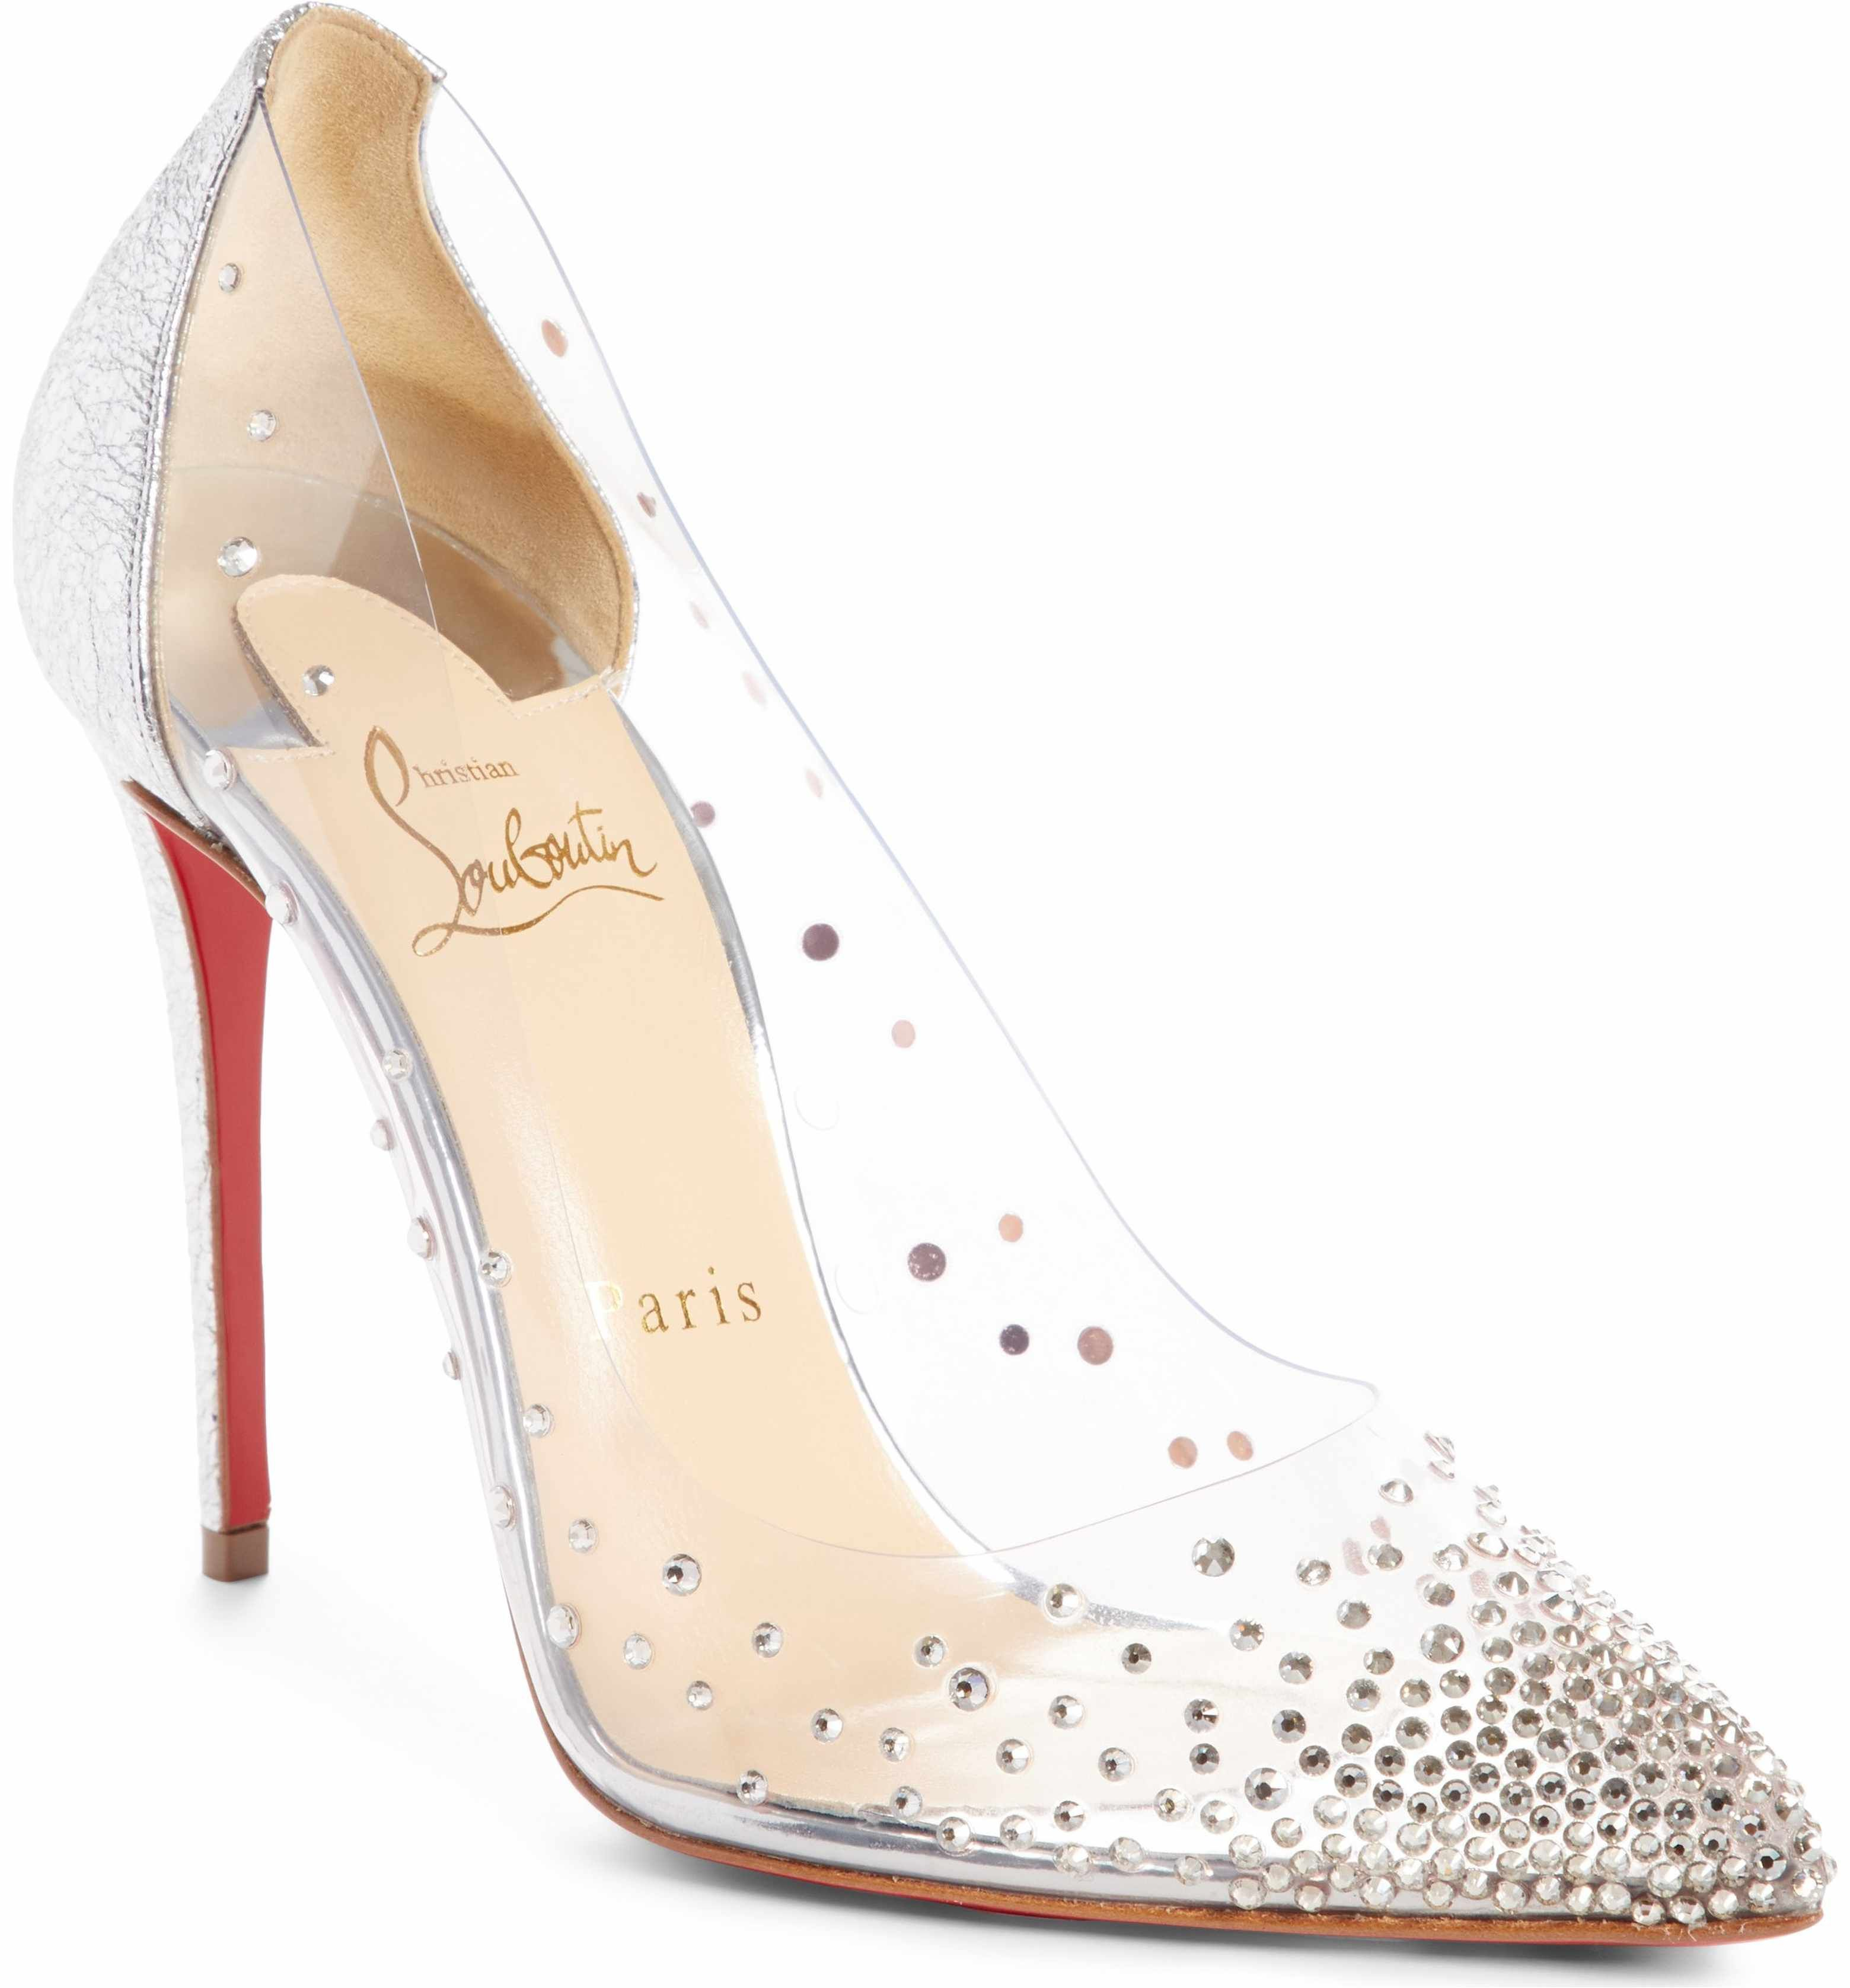 4baec6e6117 Main Image - Christian Louboutin Degrastrass Clear Embellished Pump ...